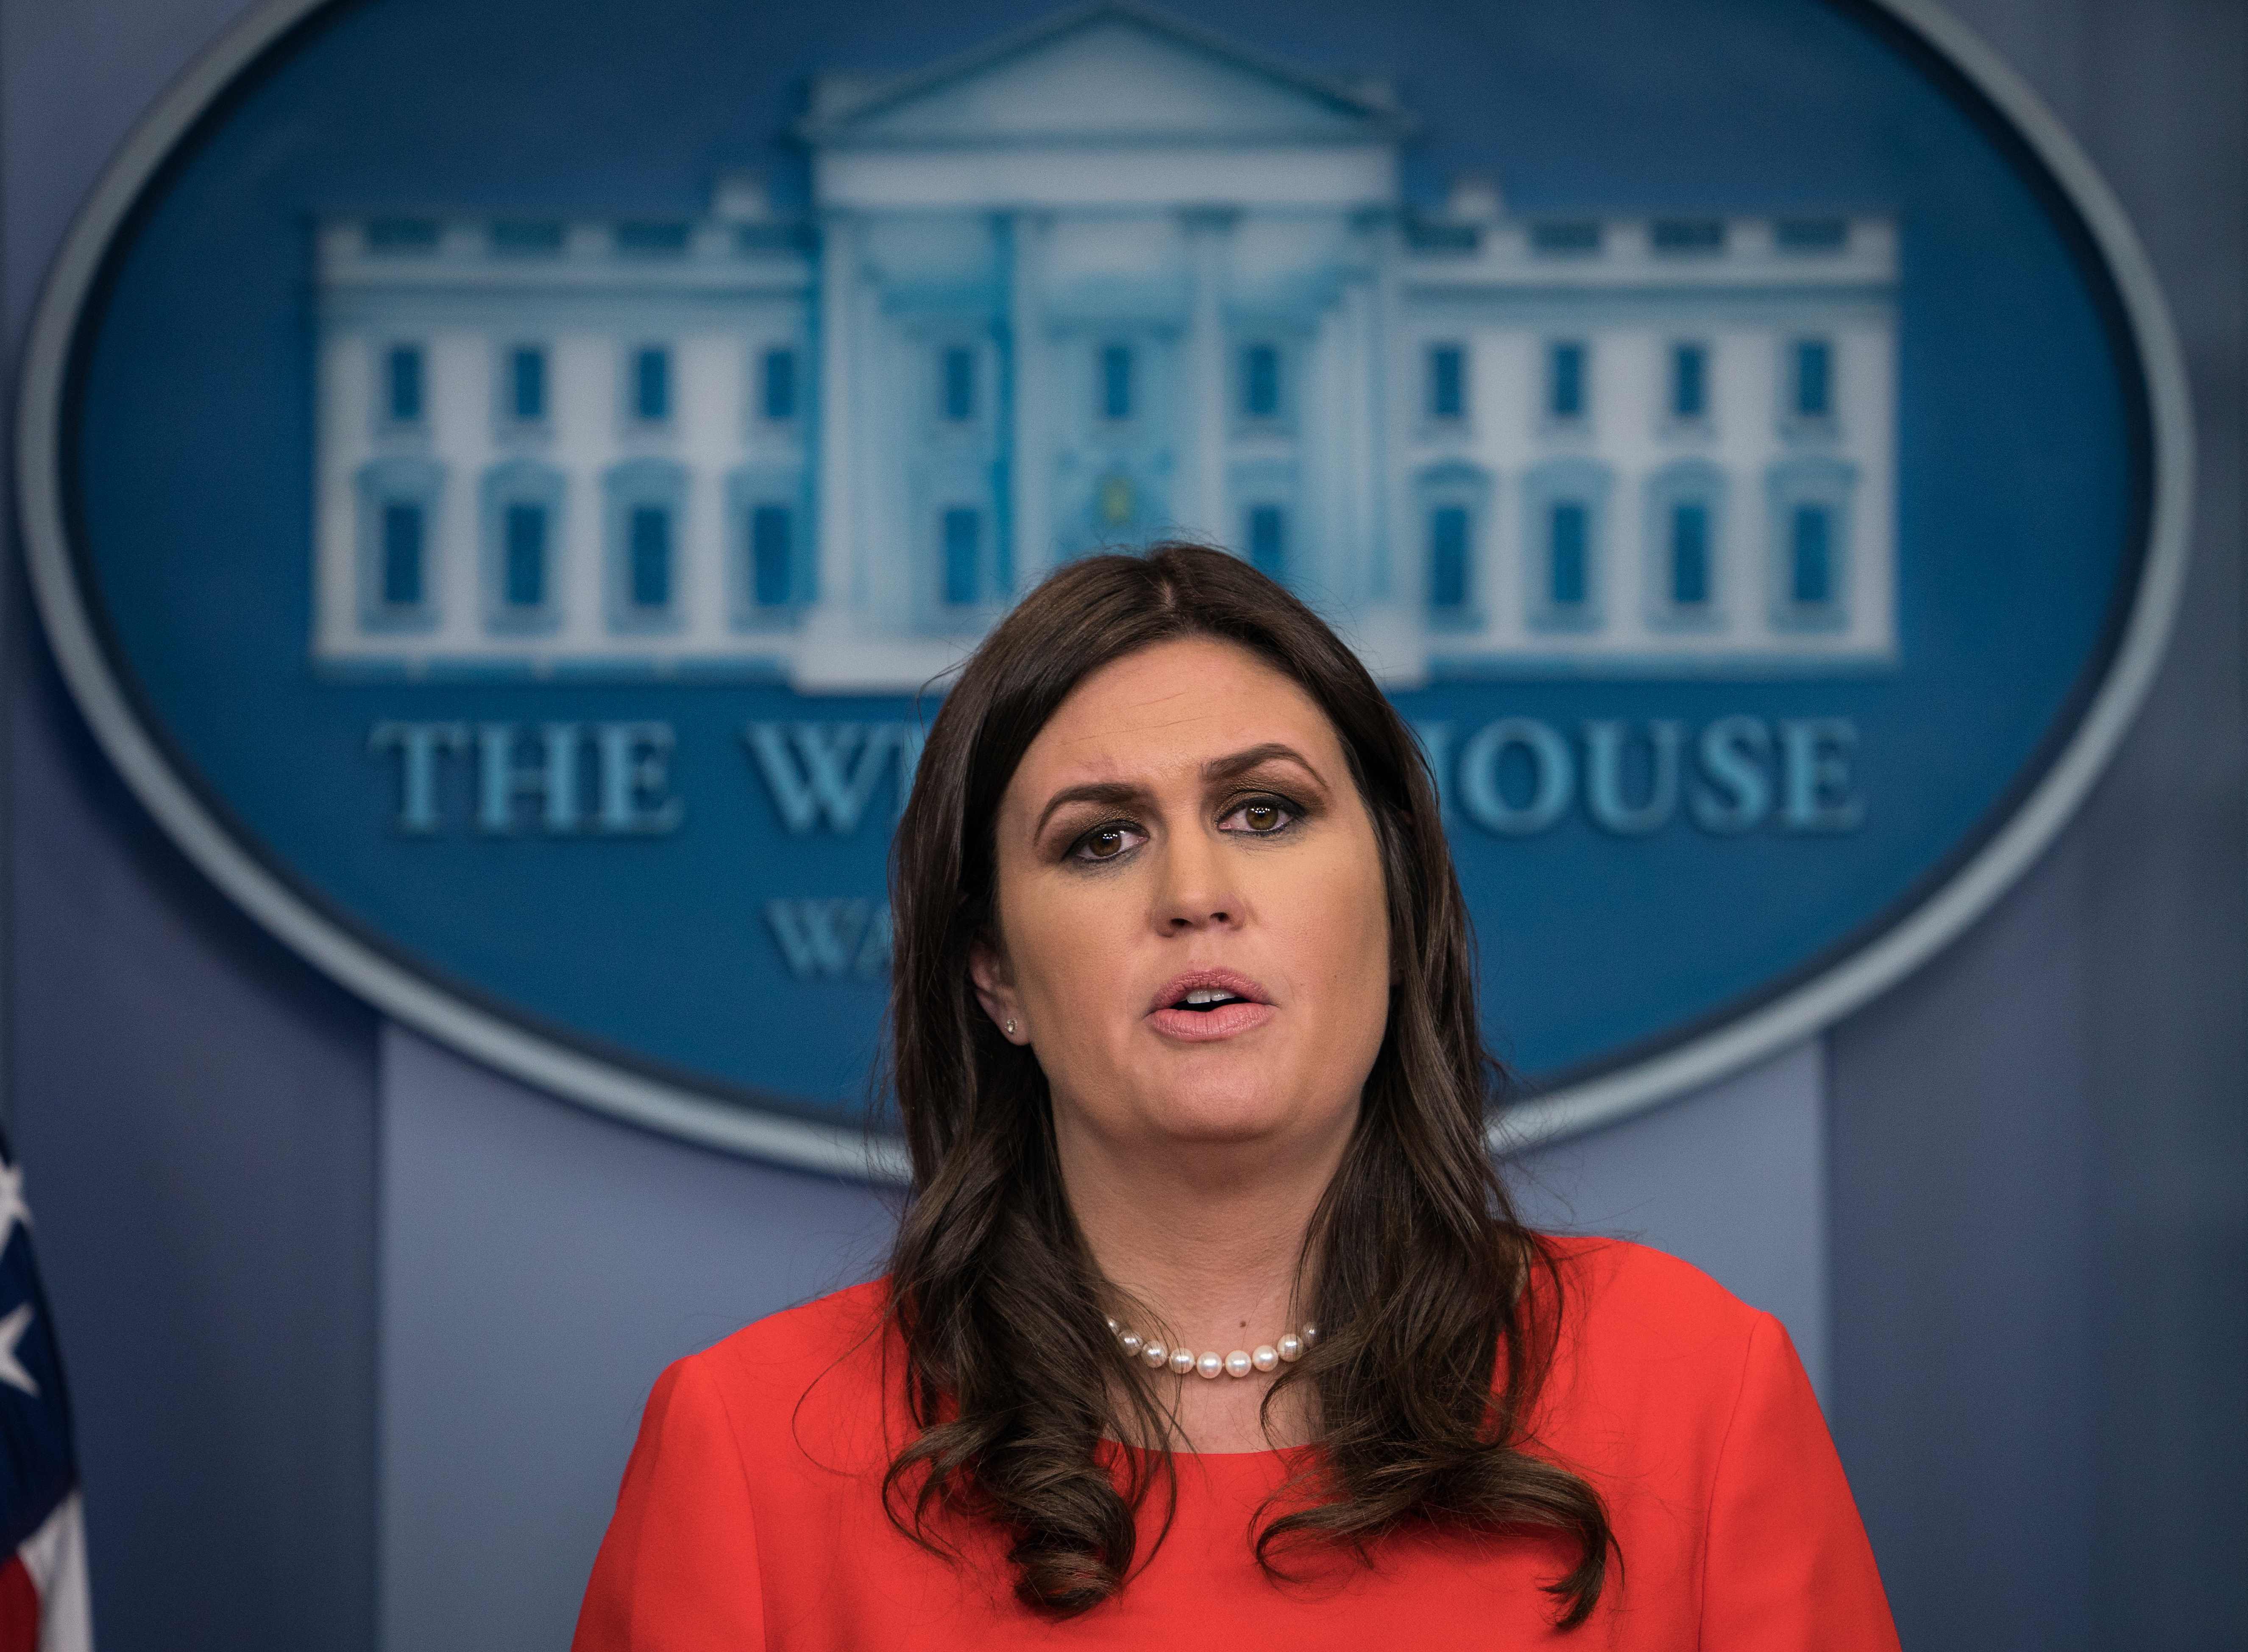 L.A. Times columnist apologizes for 'insensitive' description of Sarah Huckabee Sanders